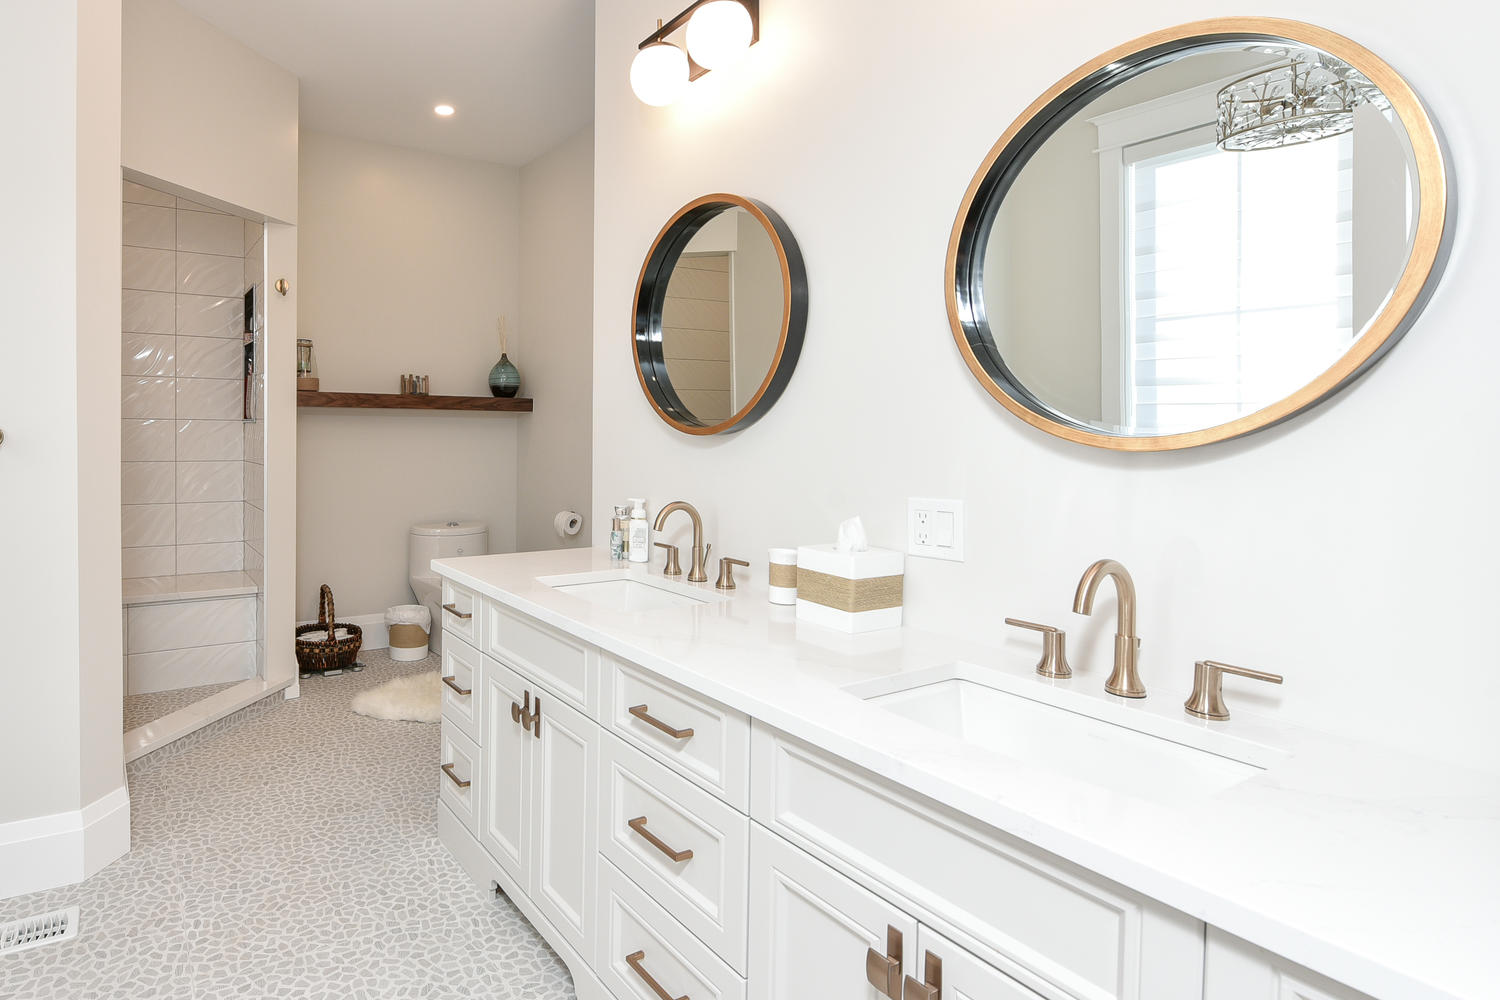 Bathroom - Eclectic Country Project In Renfrew